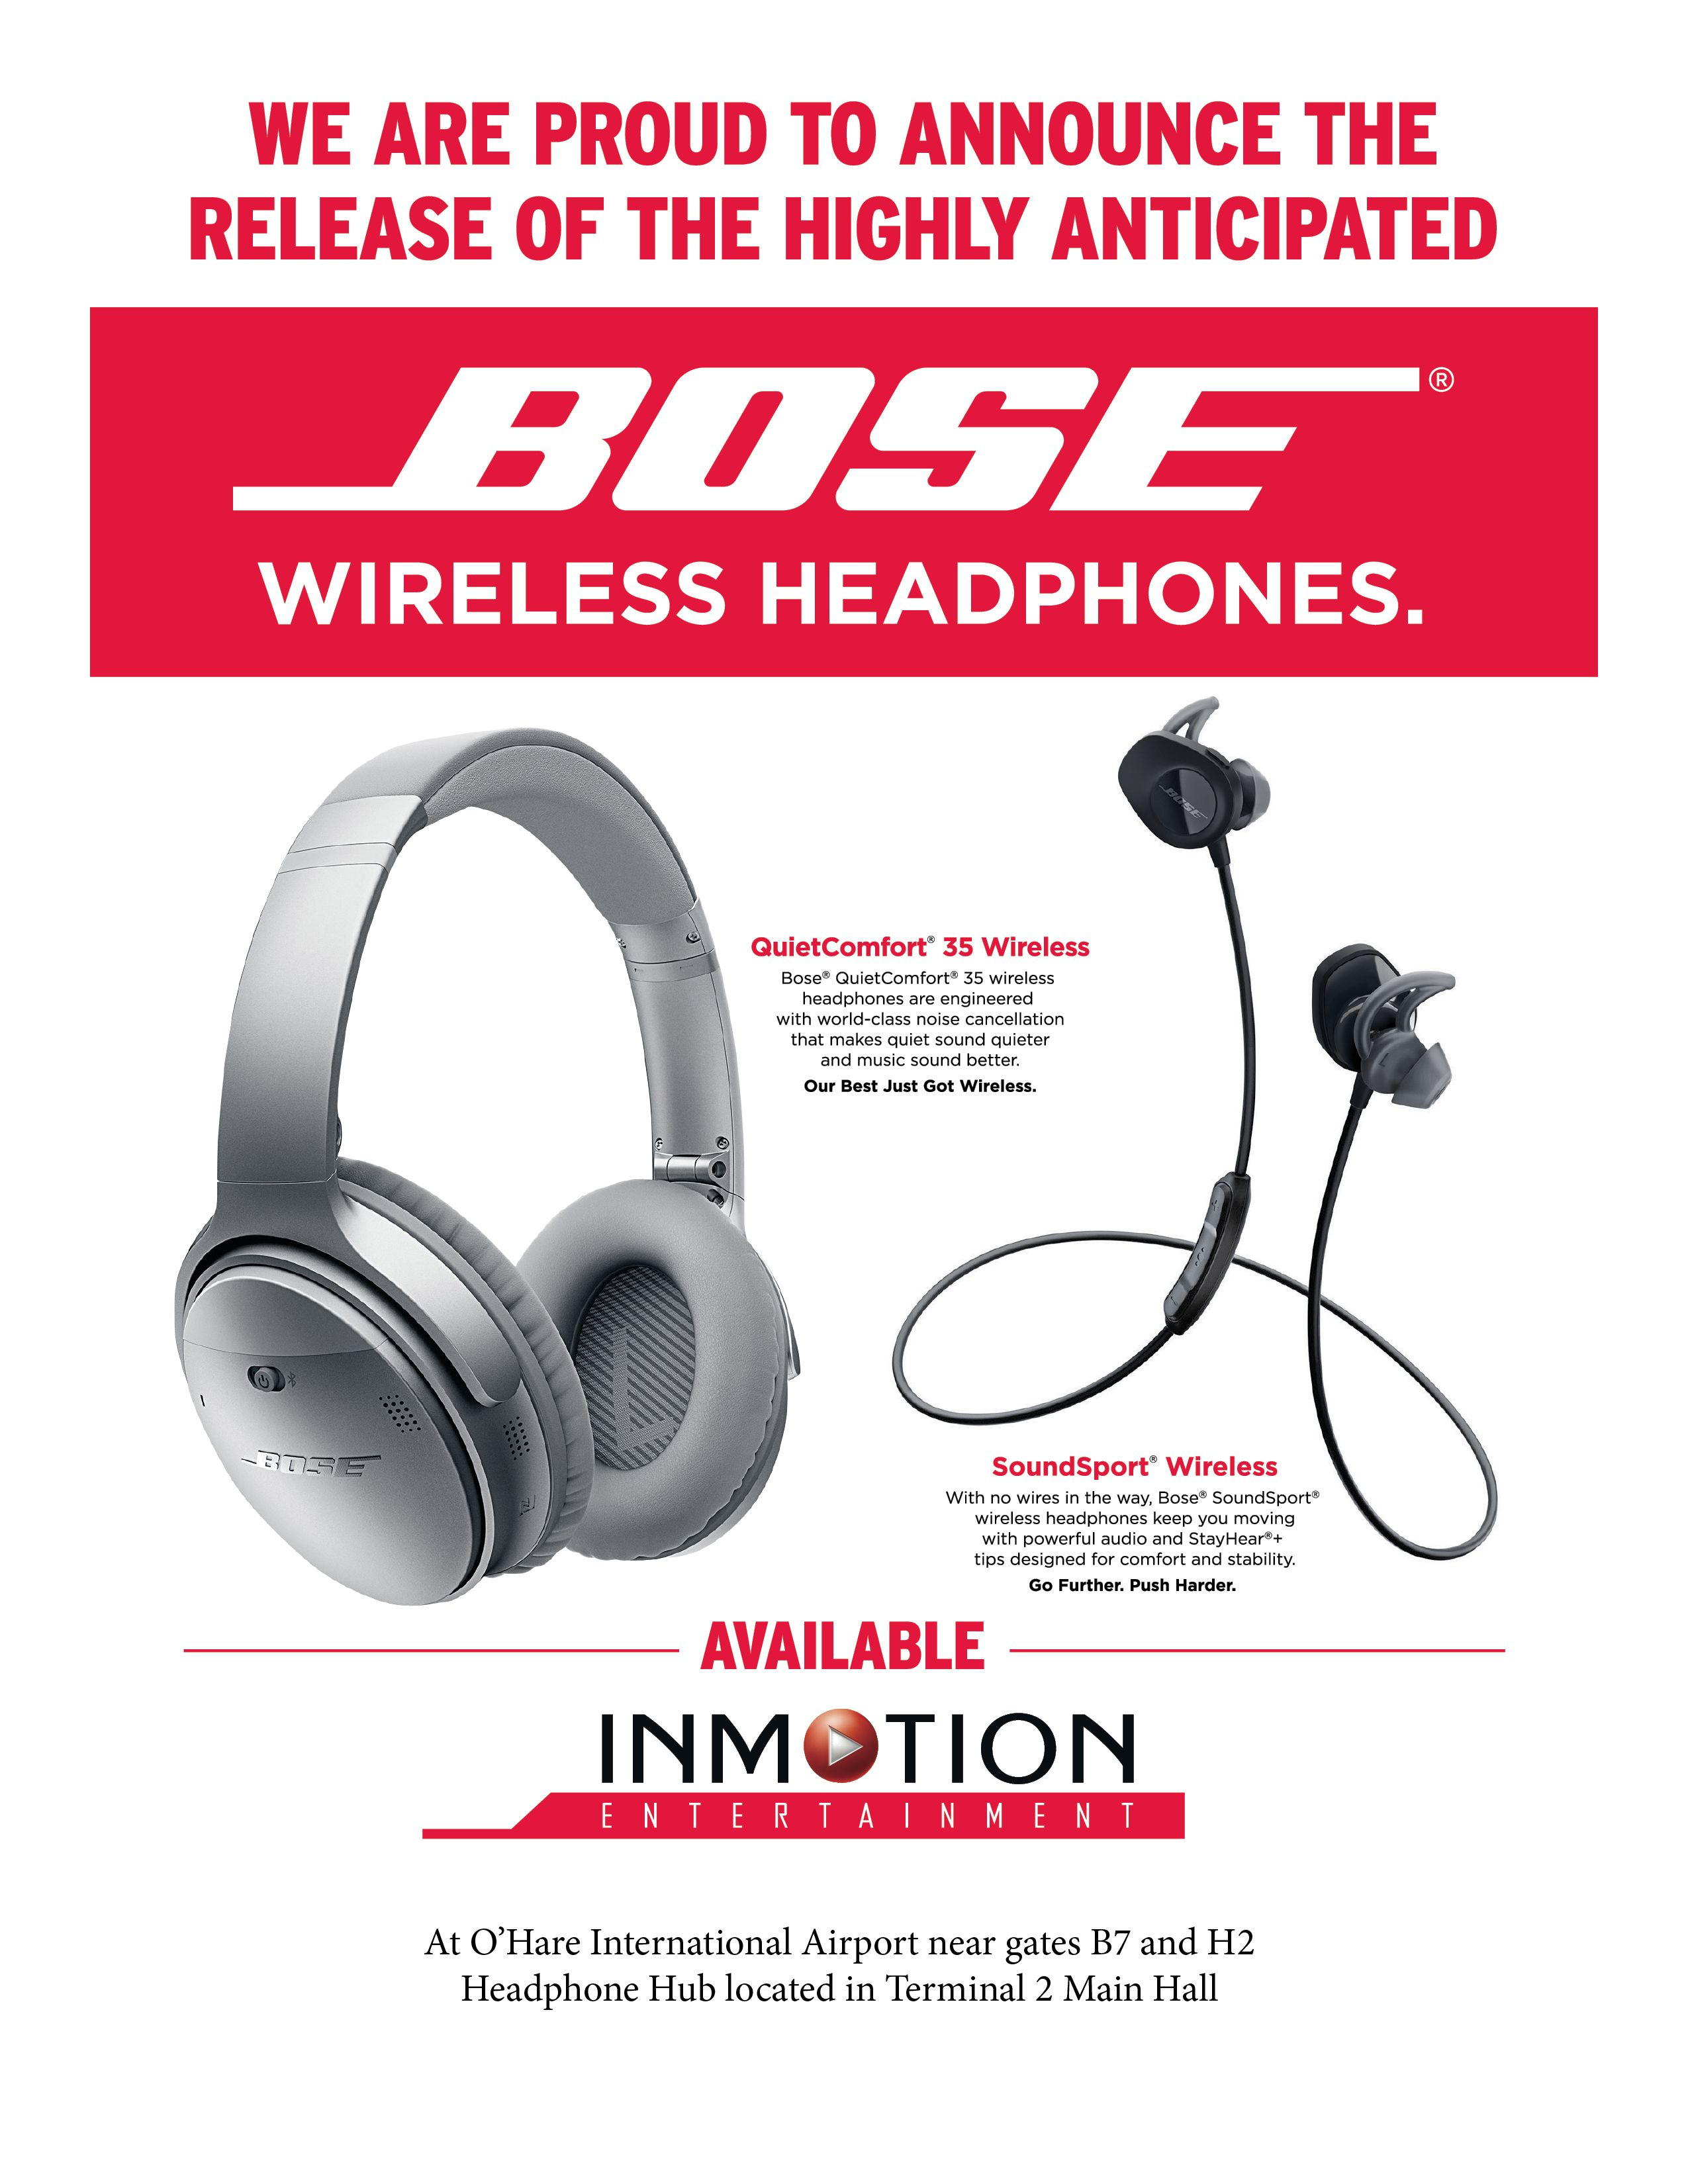 Get Bose Wireless Headphones at O'Hare's InMotion